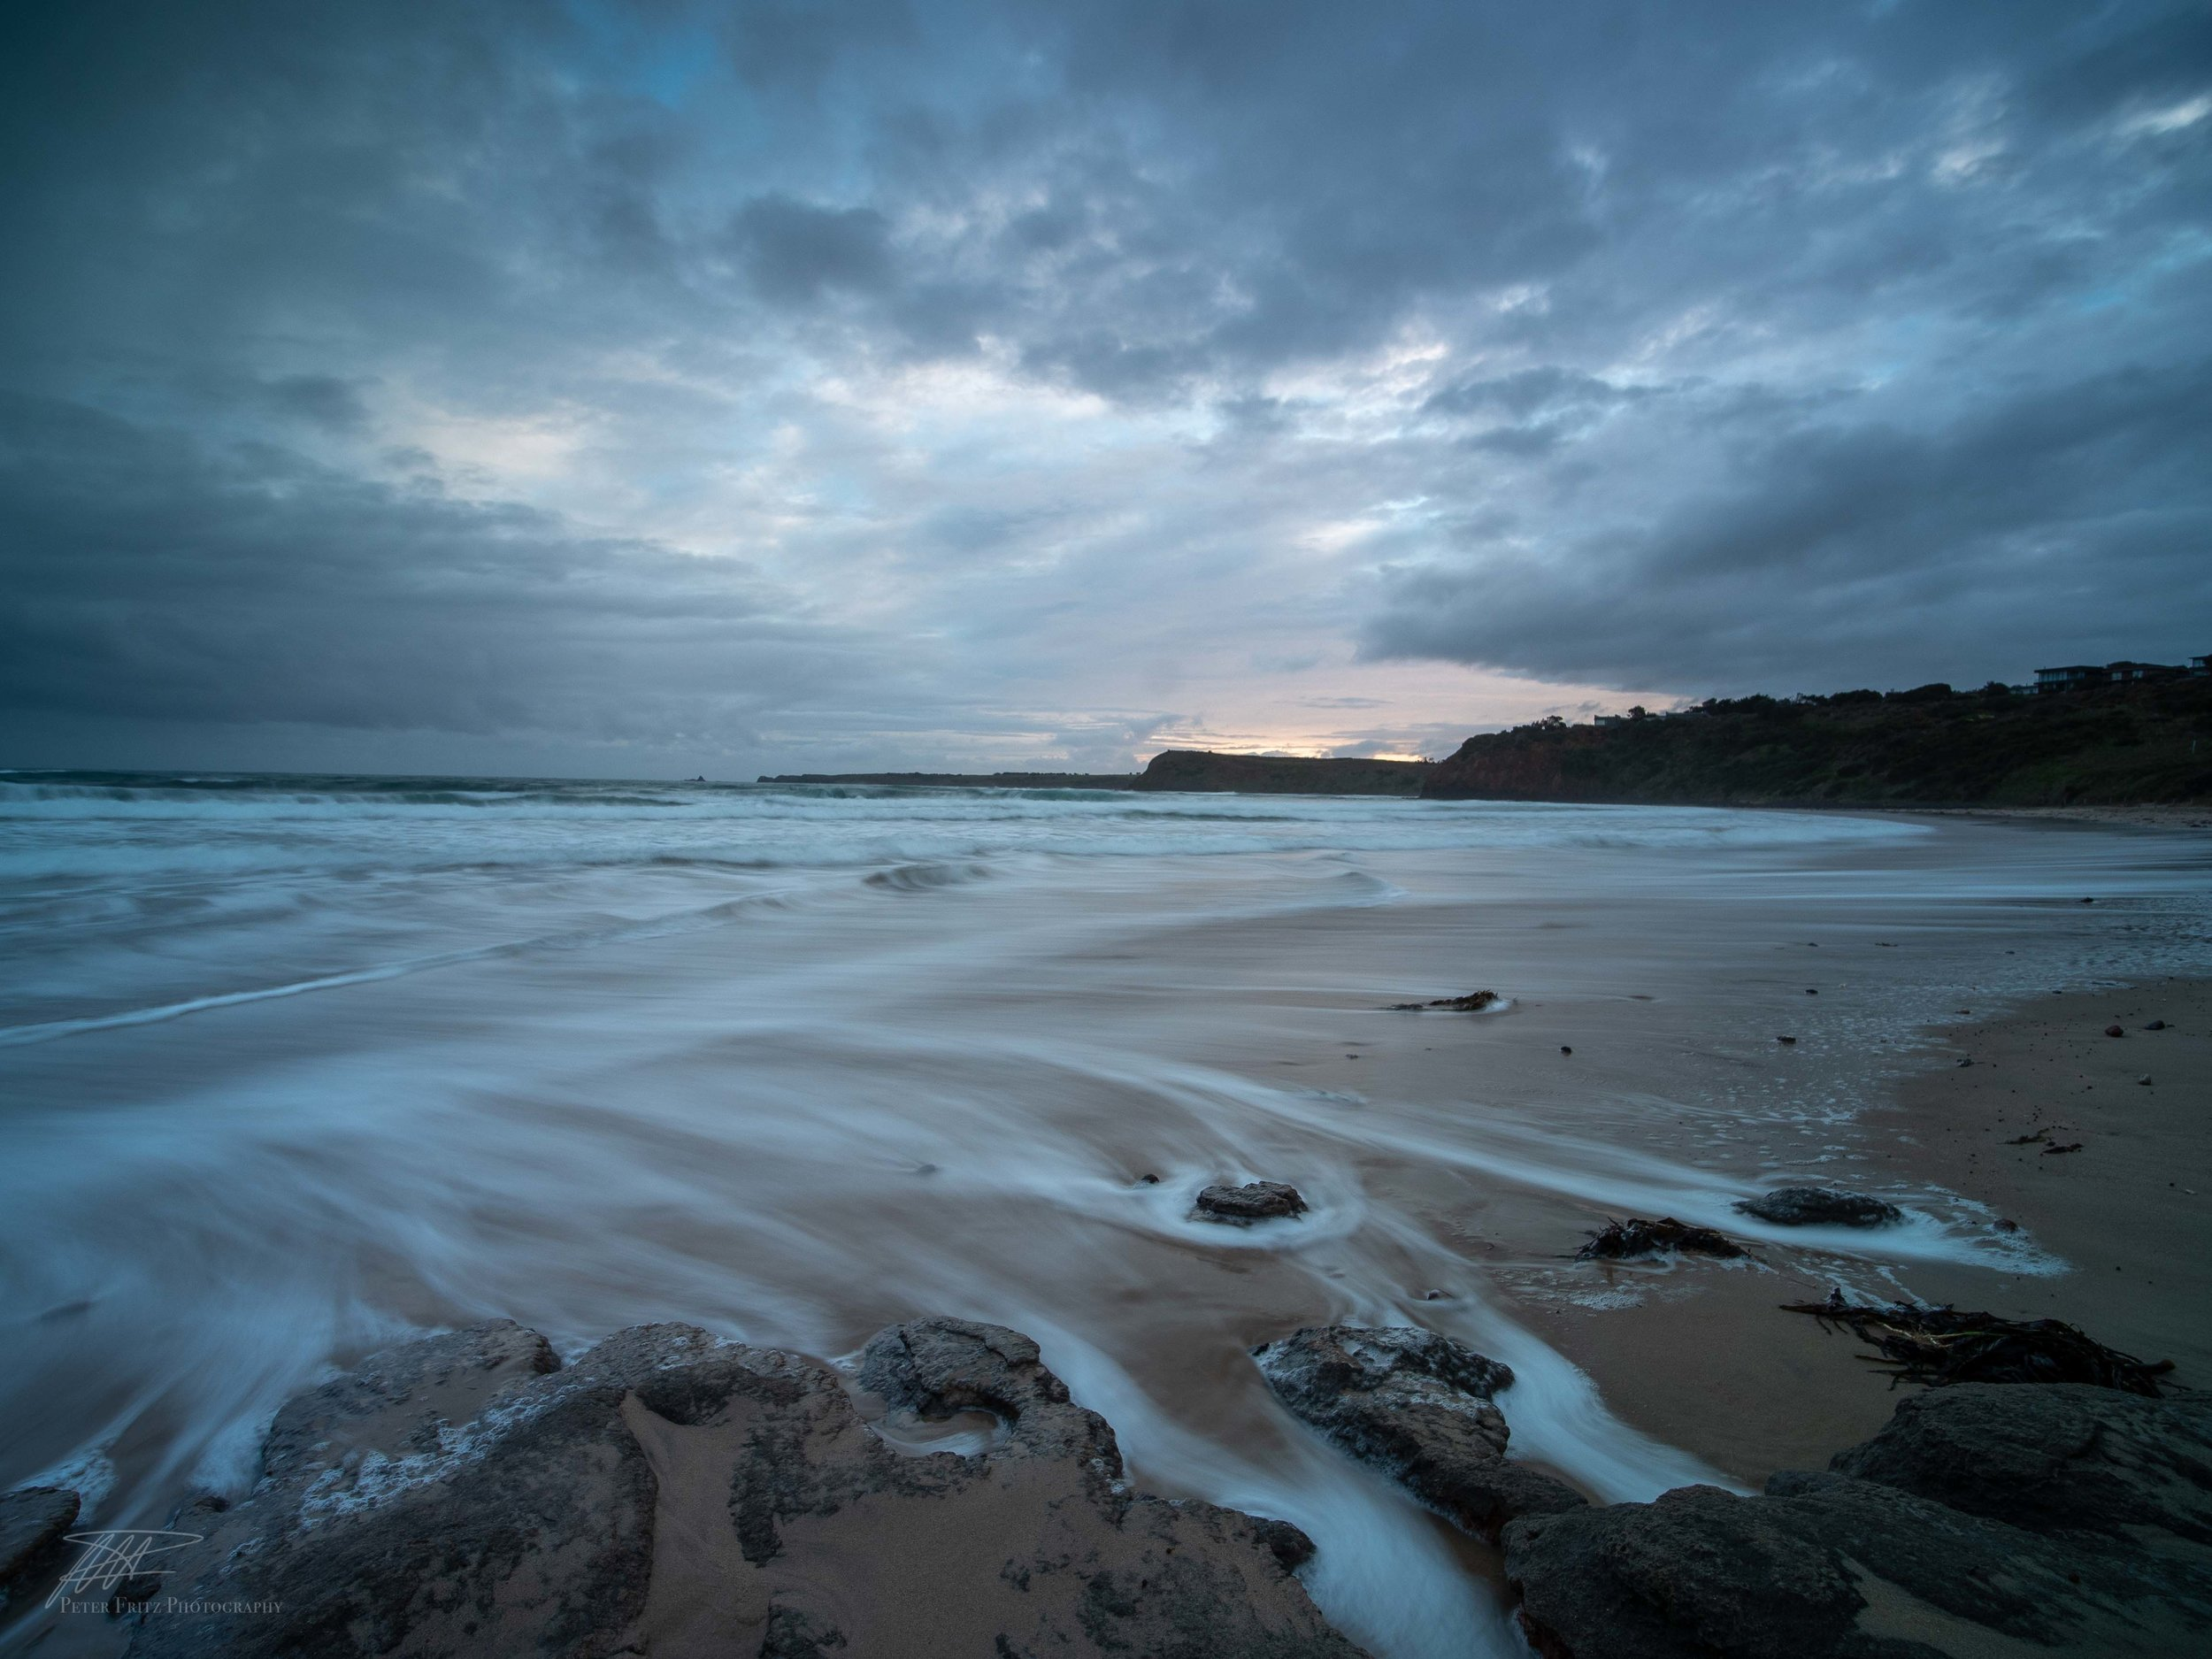 A lacklustre sunset at Smiths Beach despite fantastic clouds and great movement in the water.